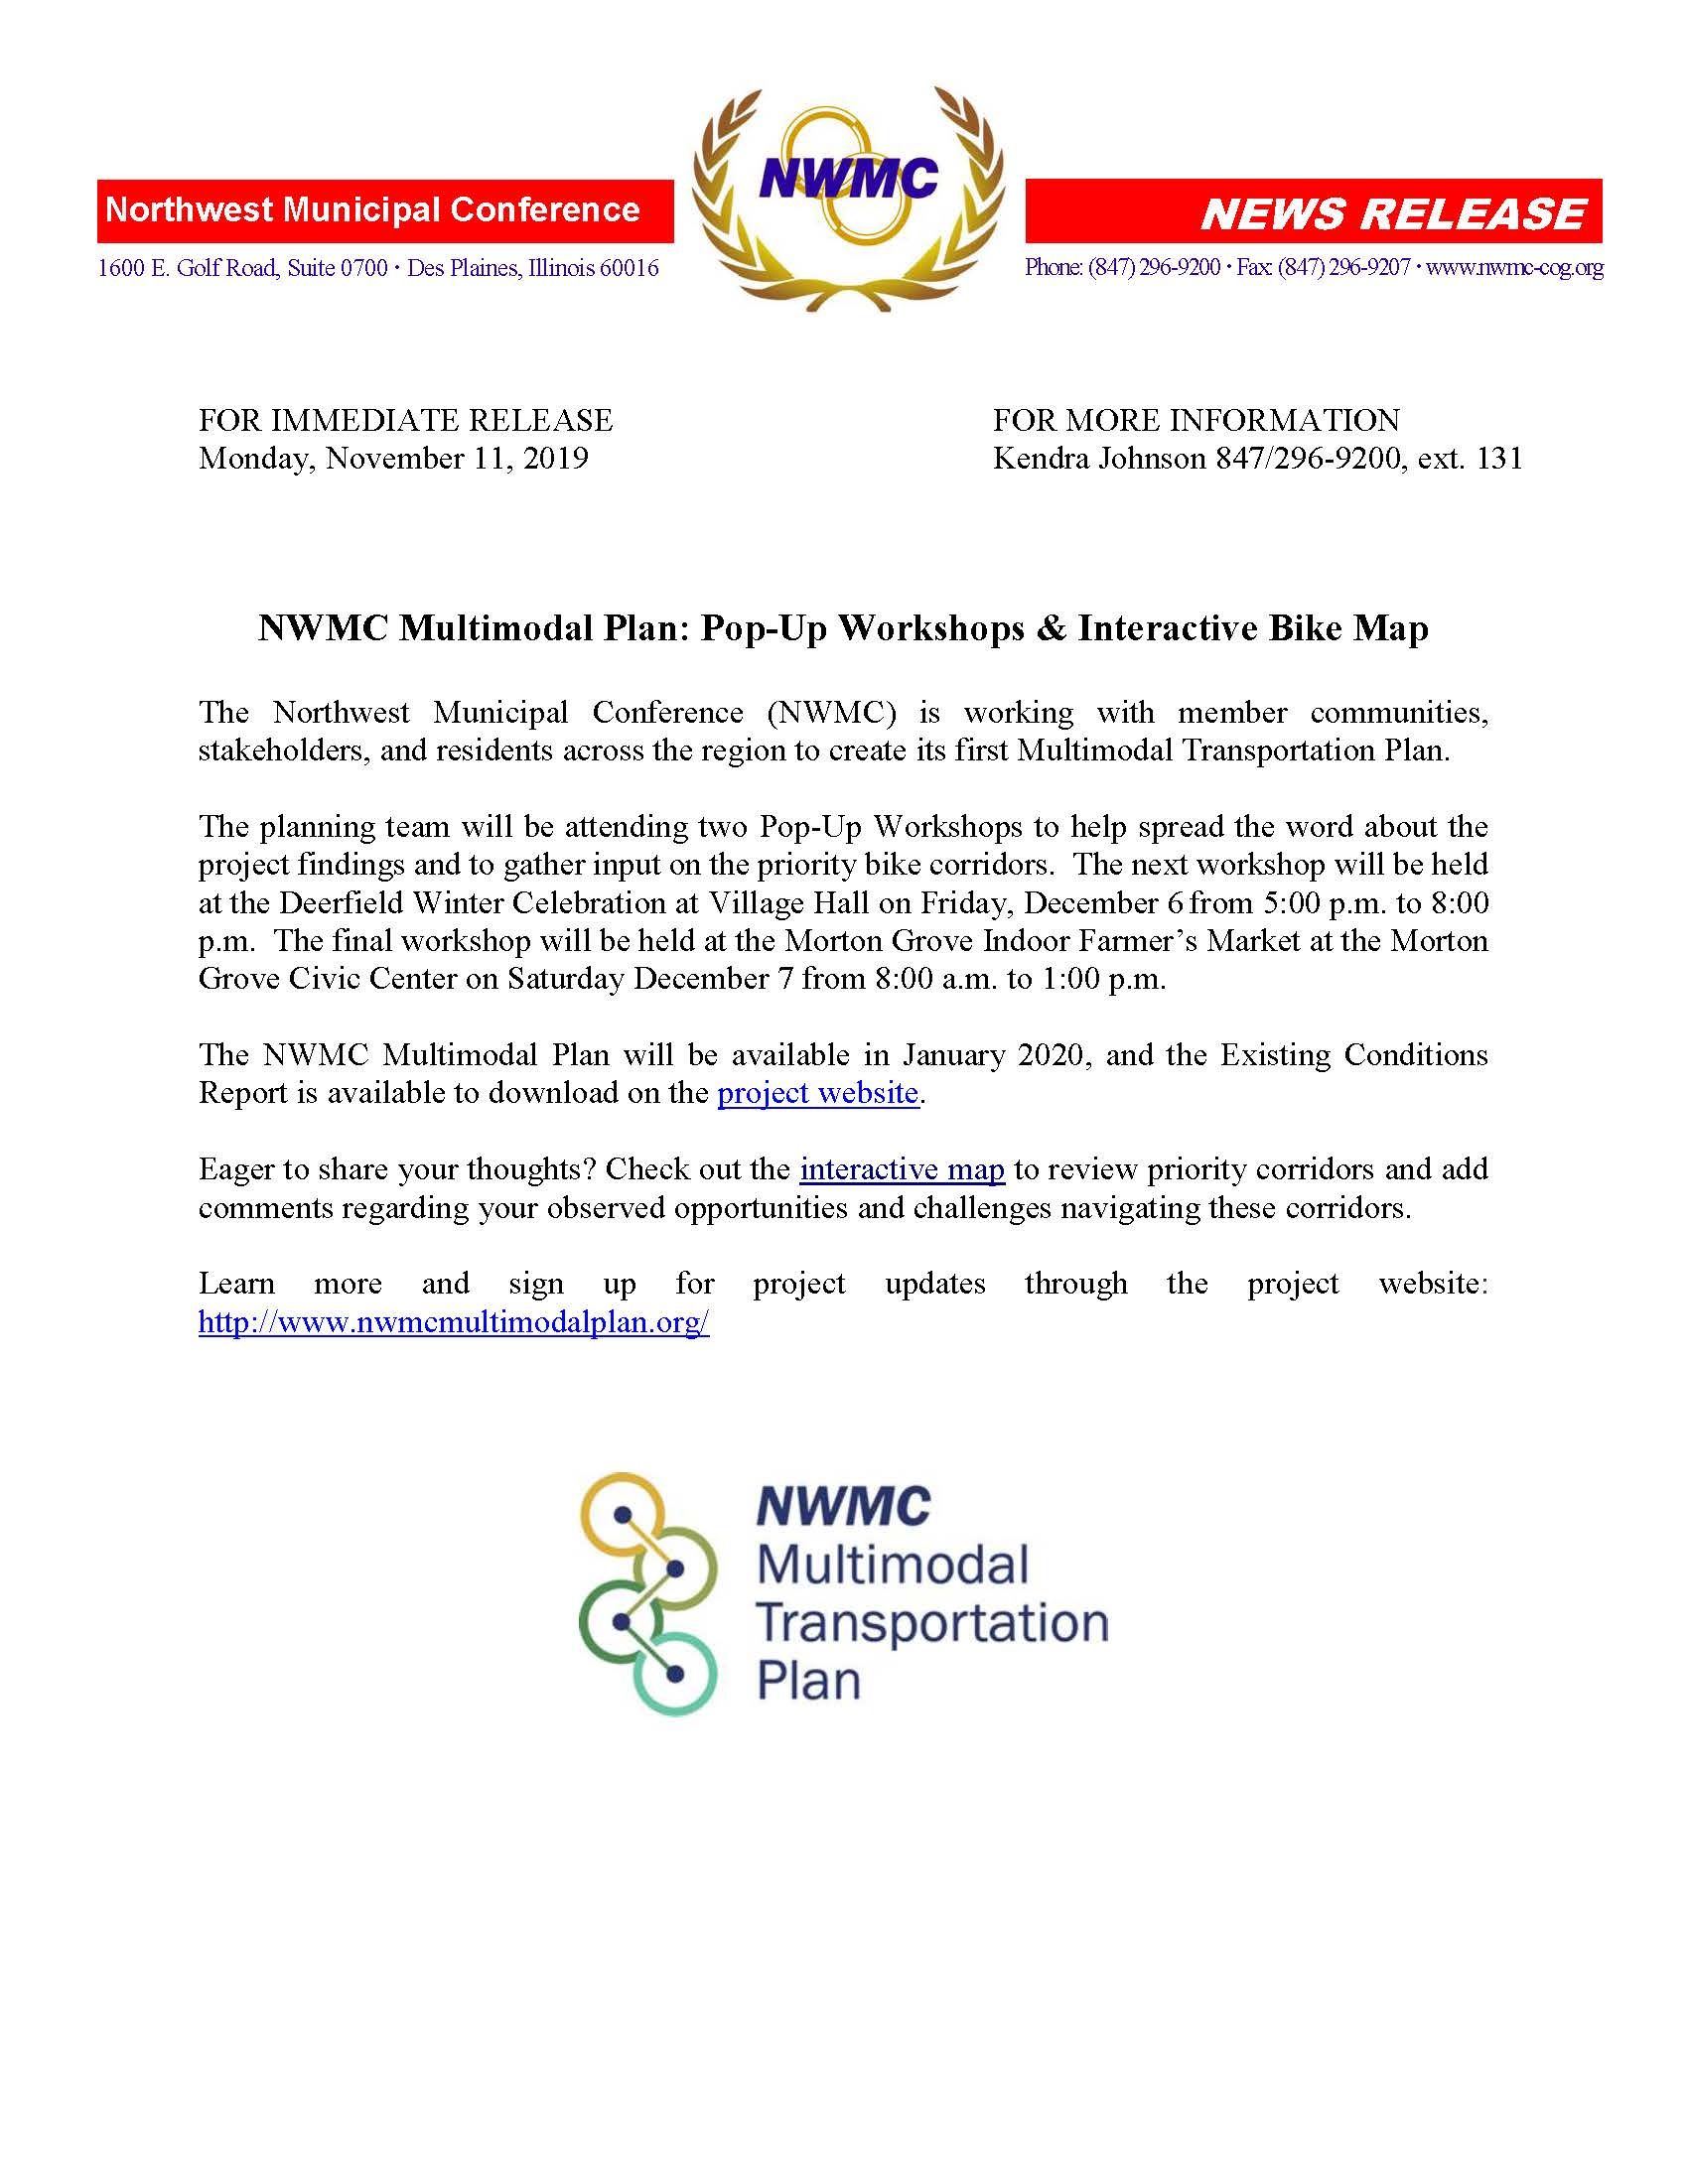 NWMC Multimodal Plan Press Release -11-11-19